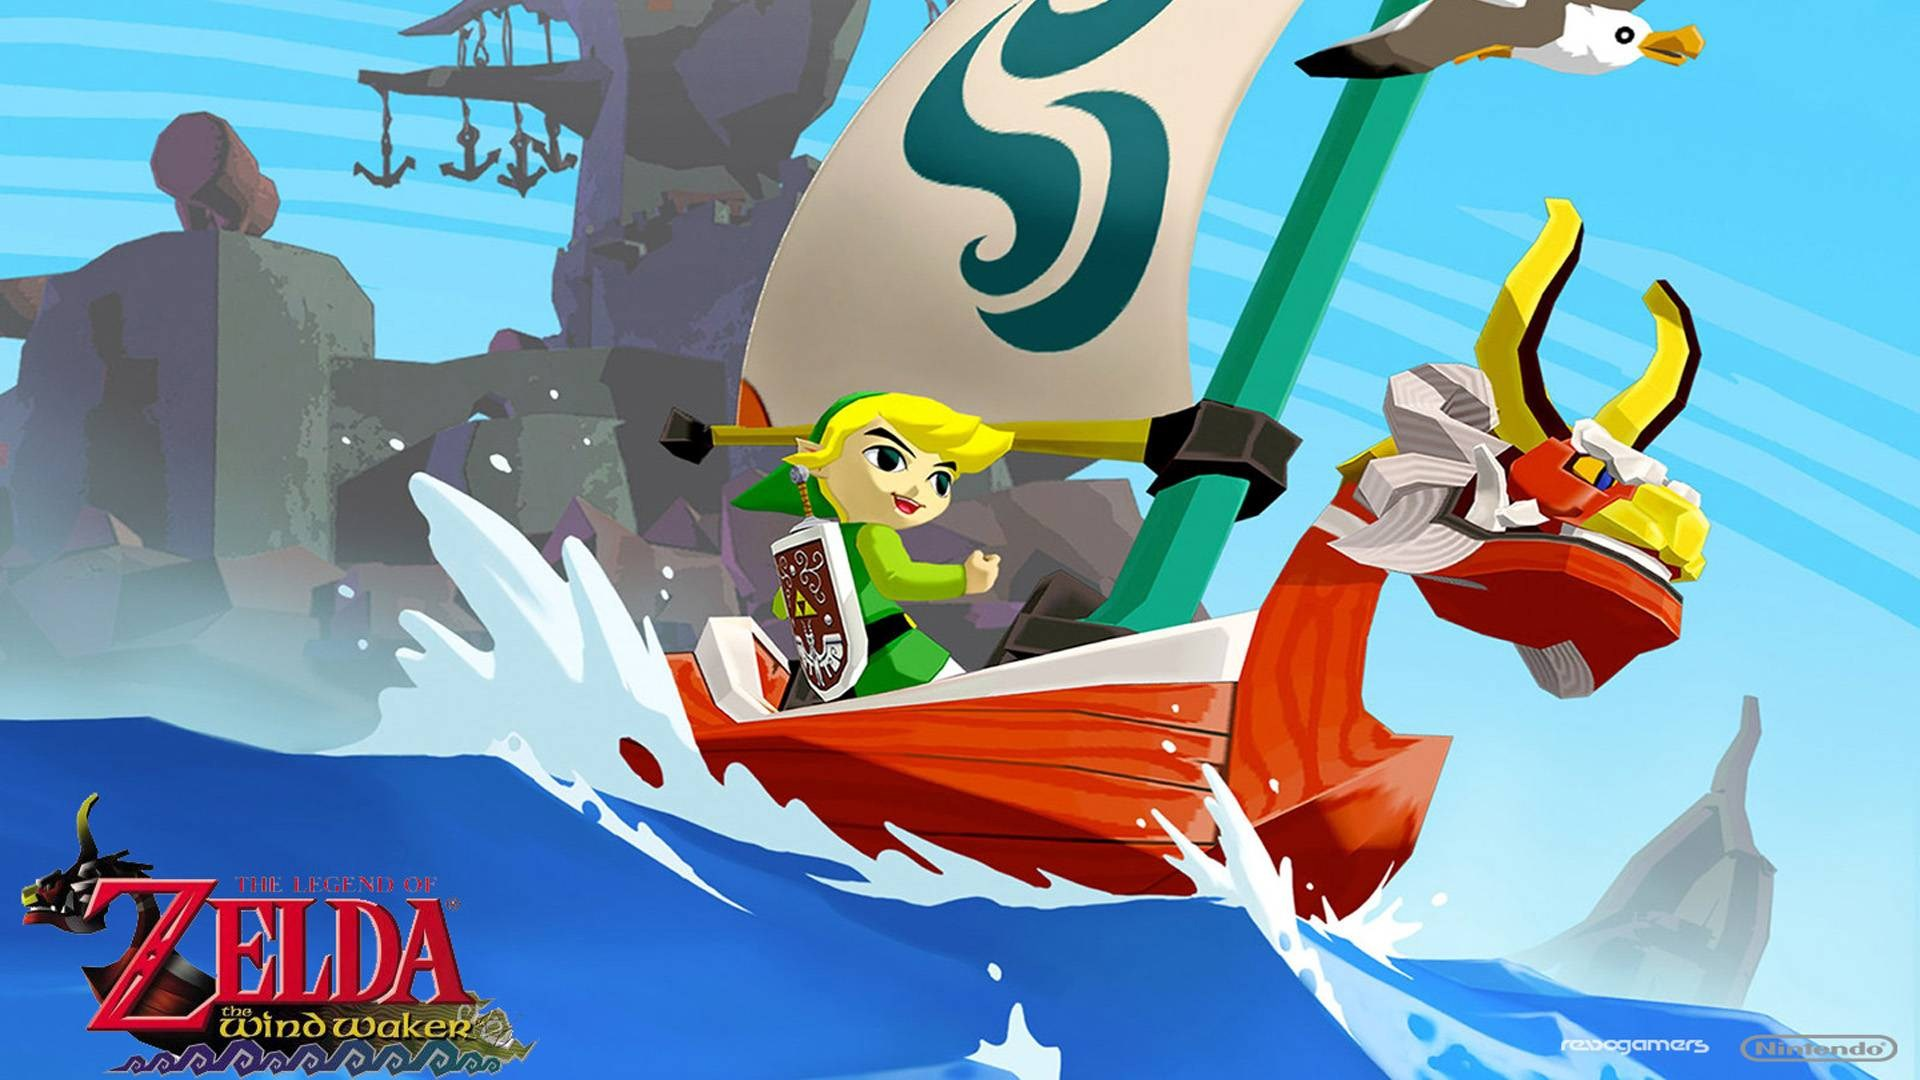 1920x1080-Amazing-the-legend-of-zelda-the-wind-waker-hd-wallpaper-wp380747